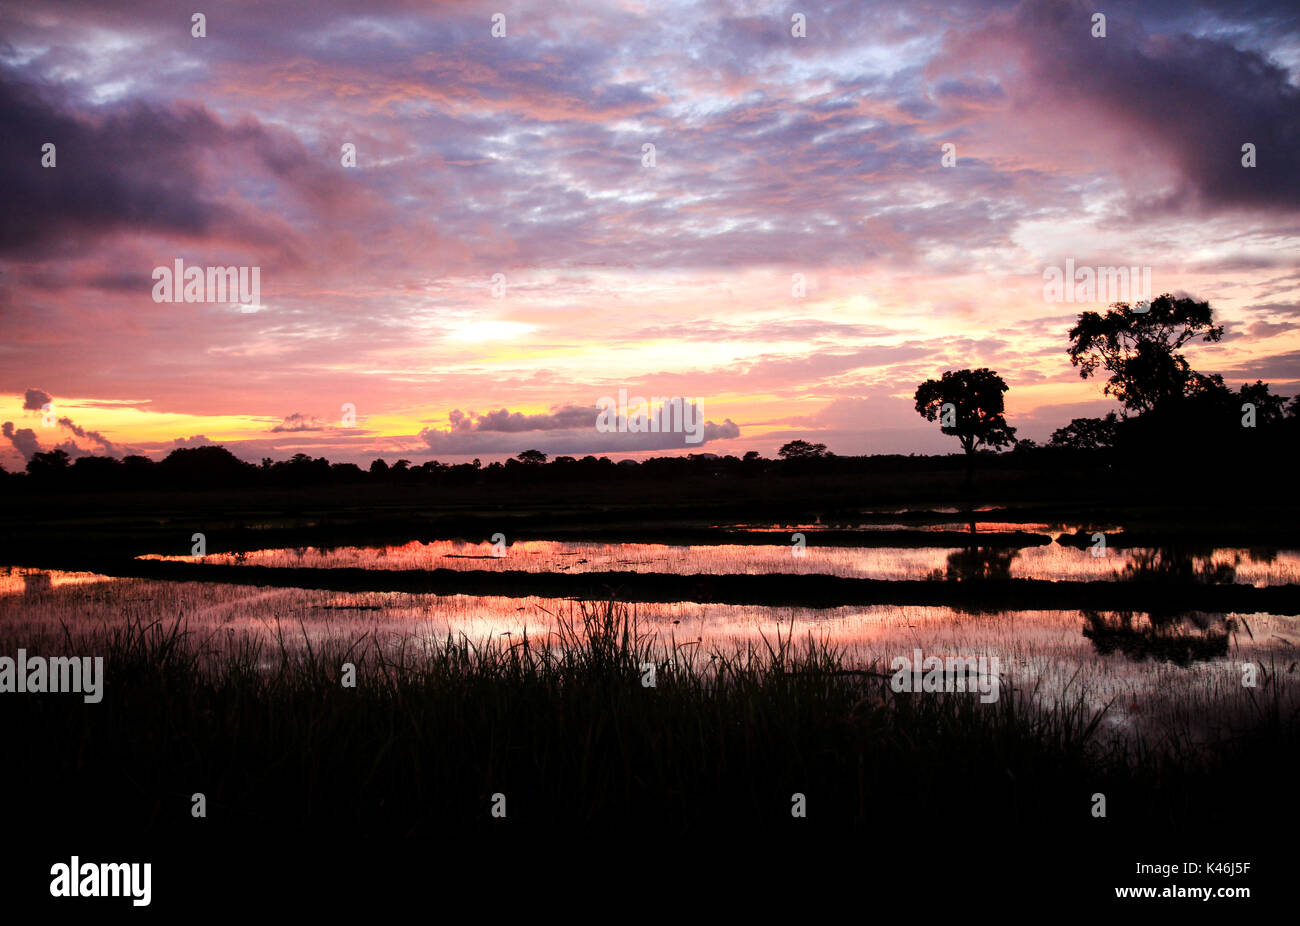 A colorful sunset landscape with clouds in the sky in Sri Lanka - Stock Image